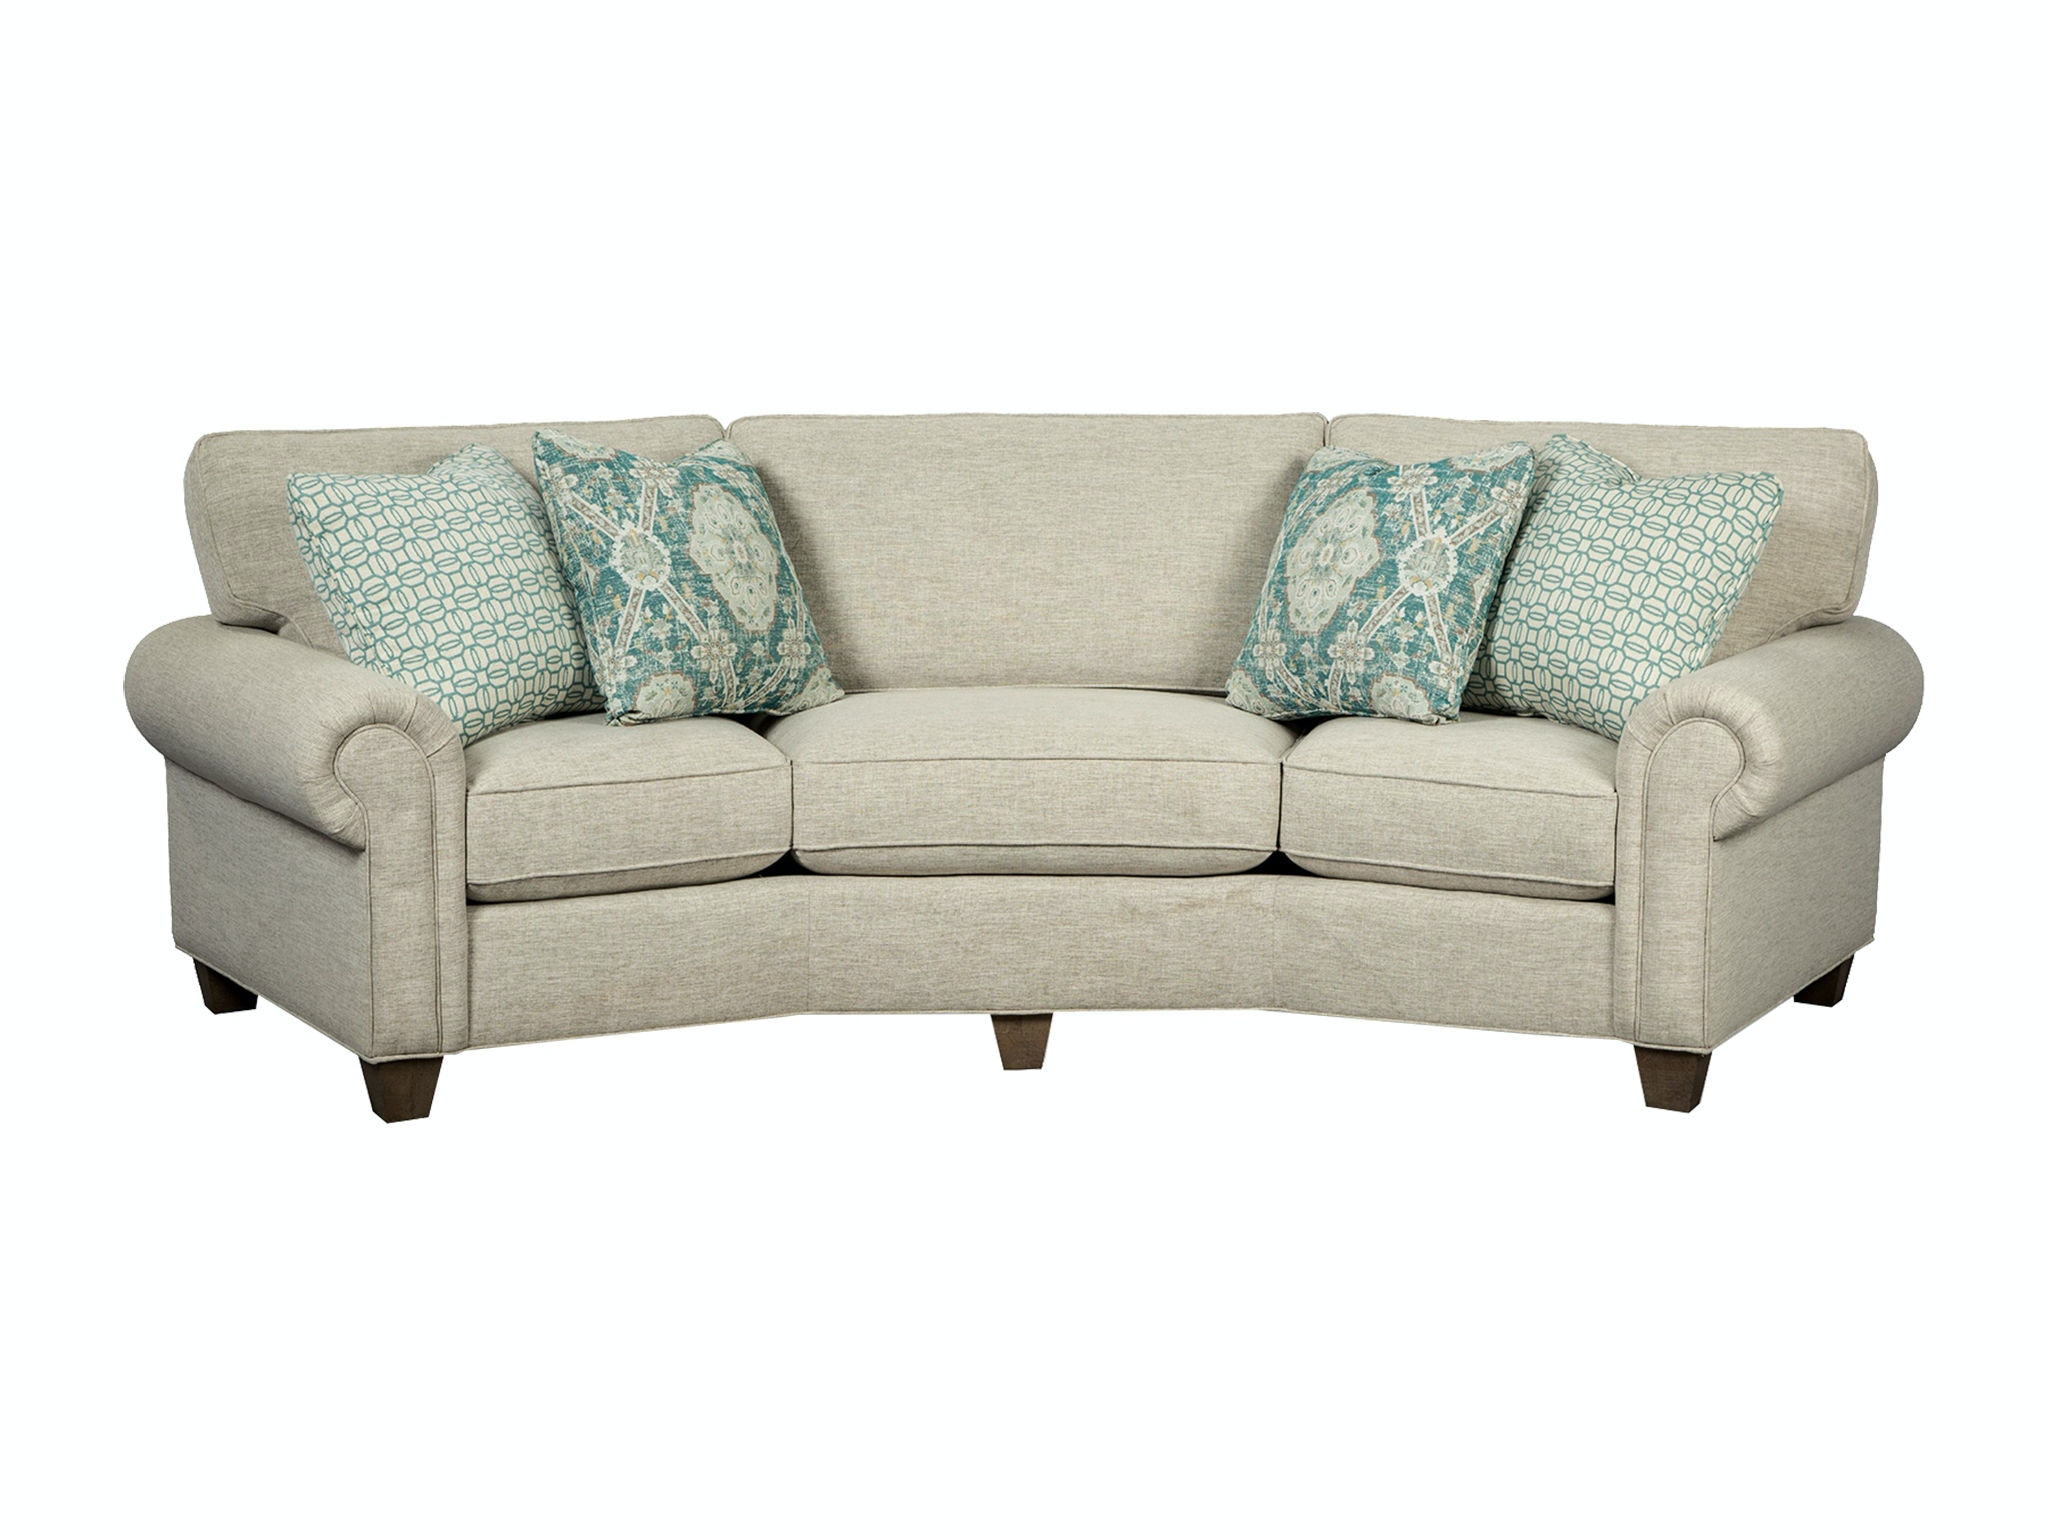 Charmant Cozy Life Sofa C914256